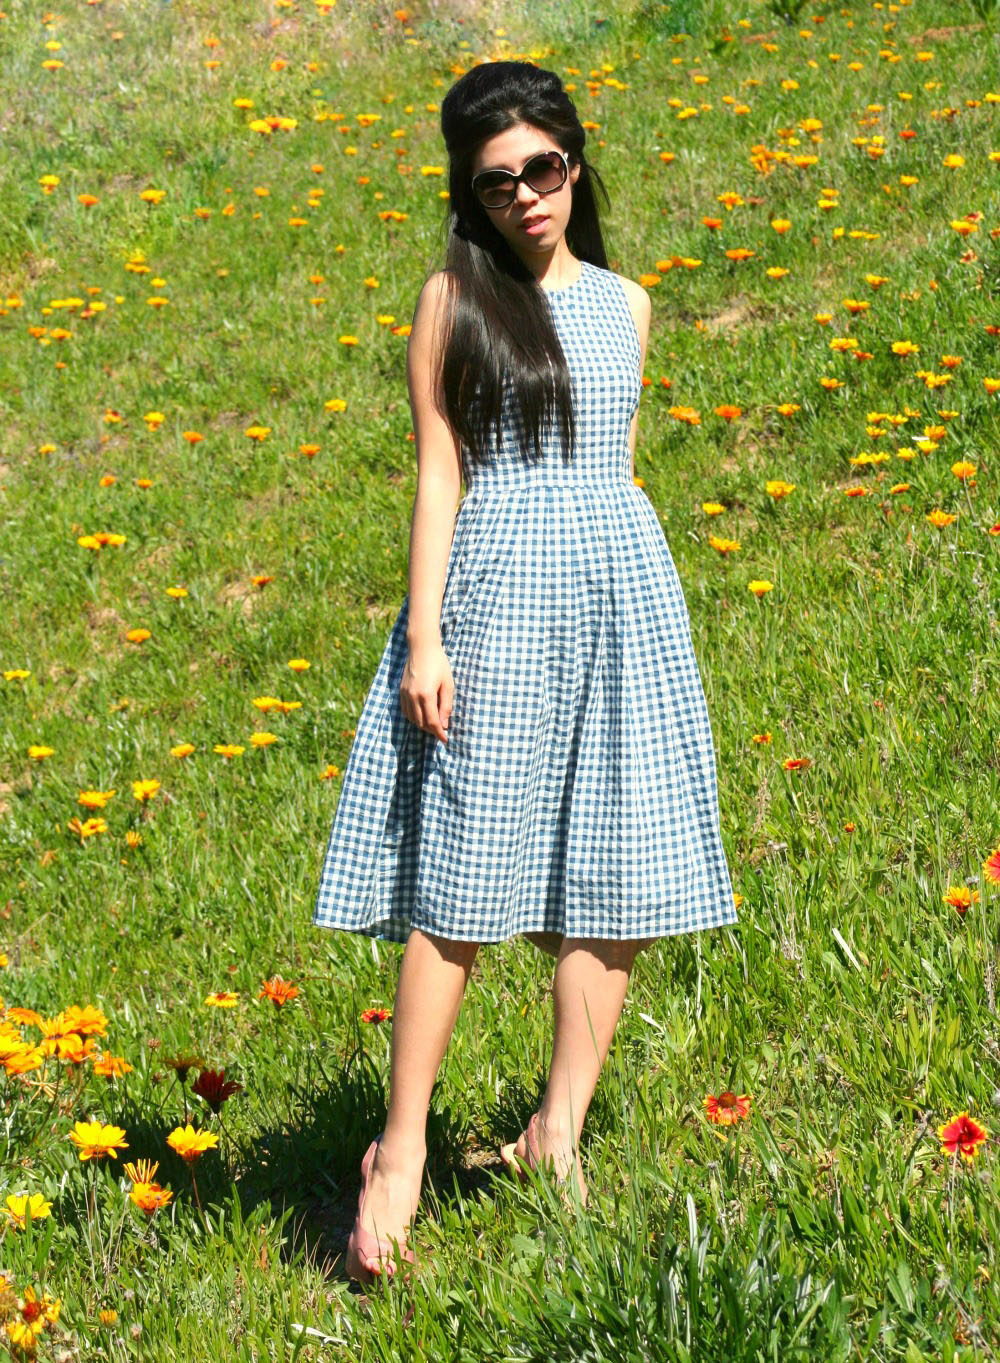 Affordable Spring Fashion_Adrienne Nguyen_Invictus